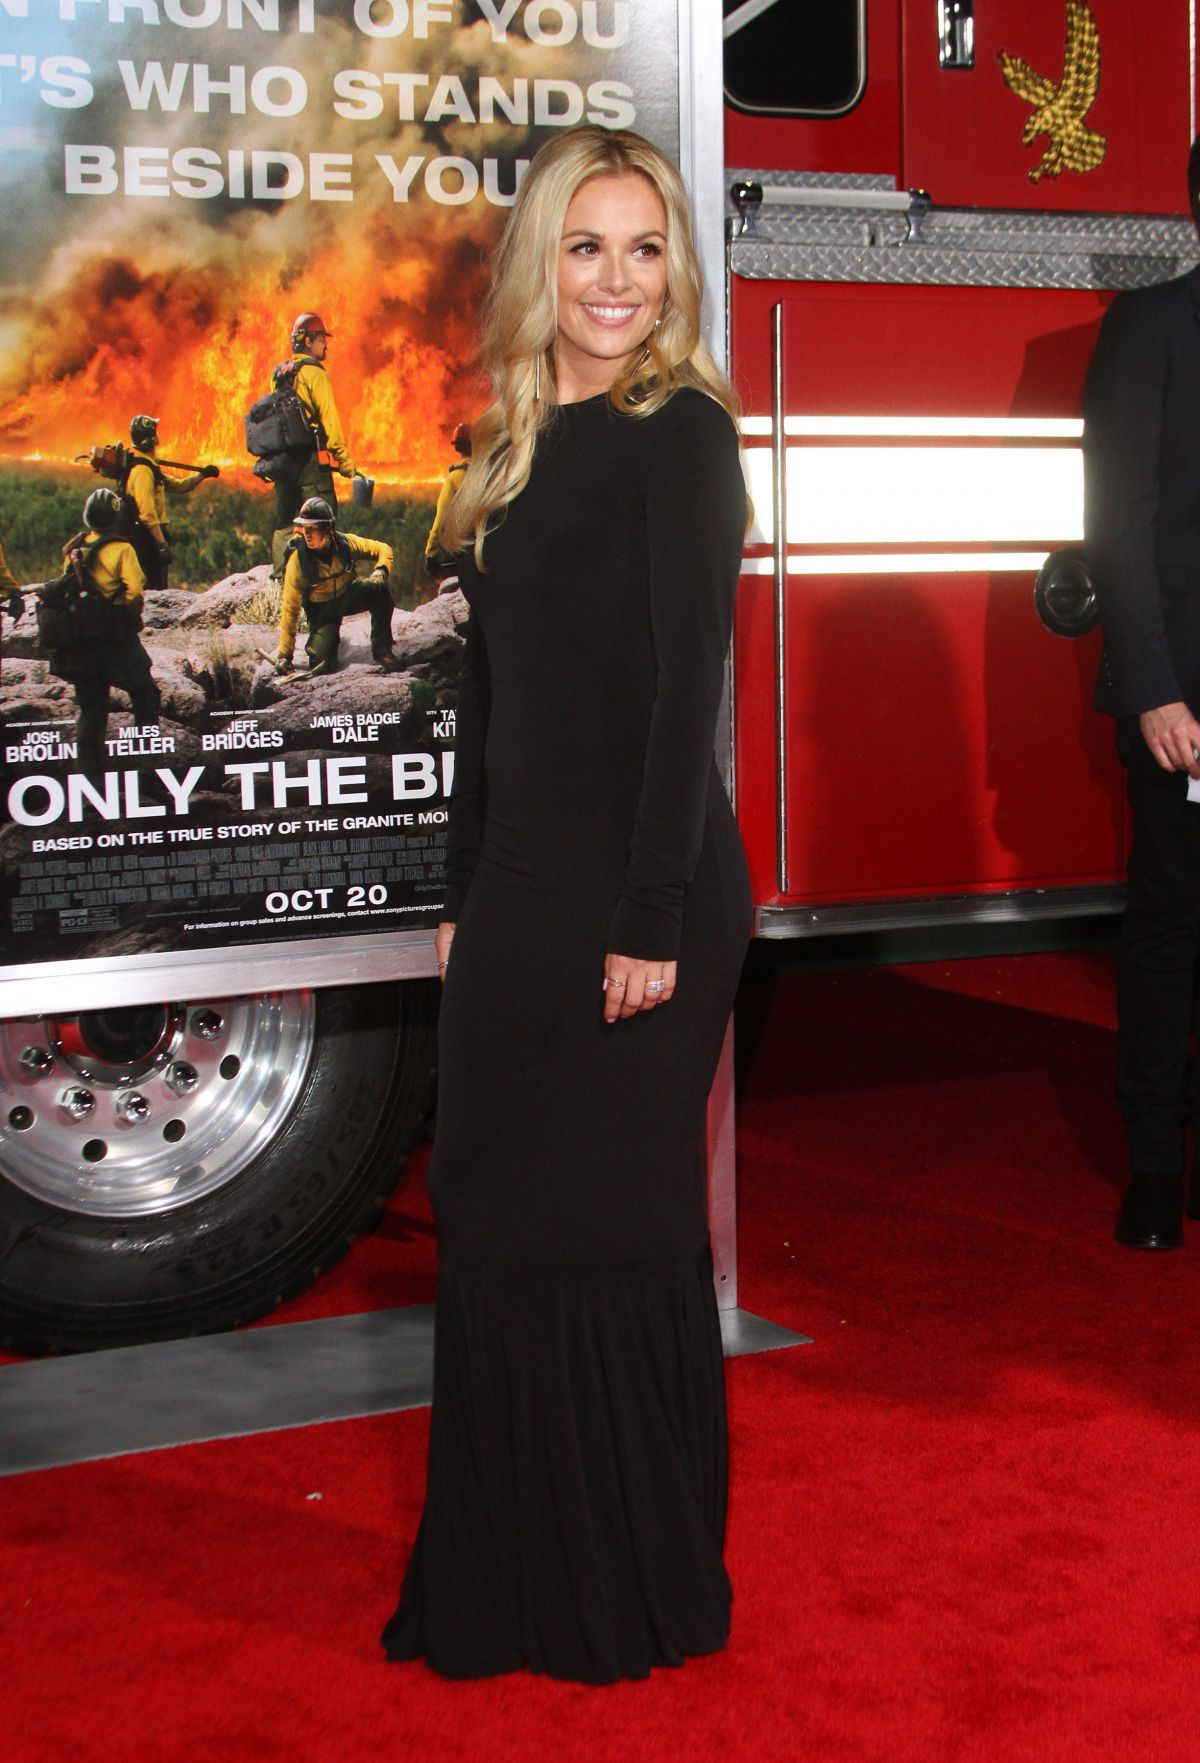 Natalie Hall At 'Only The Brave' film premiere, Los Angeles   natalie-hall-at-only-the-brave-film-premiere-los-angeles-28